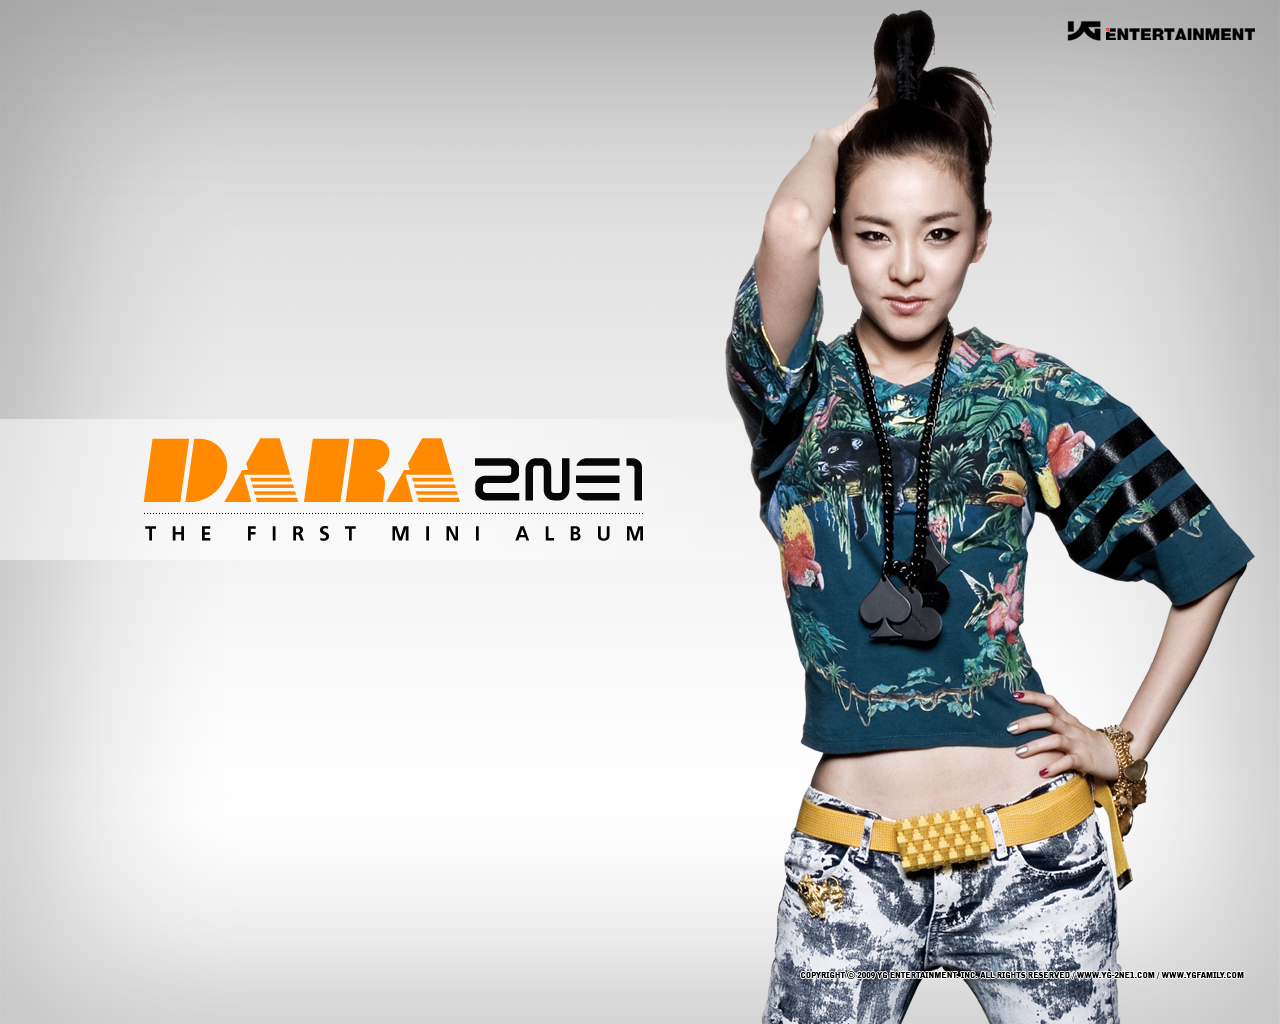 Korean Cute Girl Hd Wallpaper 2ne1 Hd Wallpapers Most Beautiful Places In The World